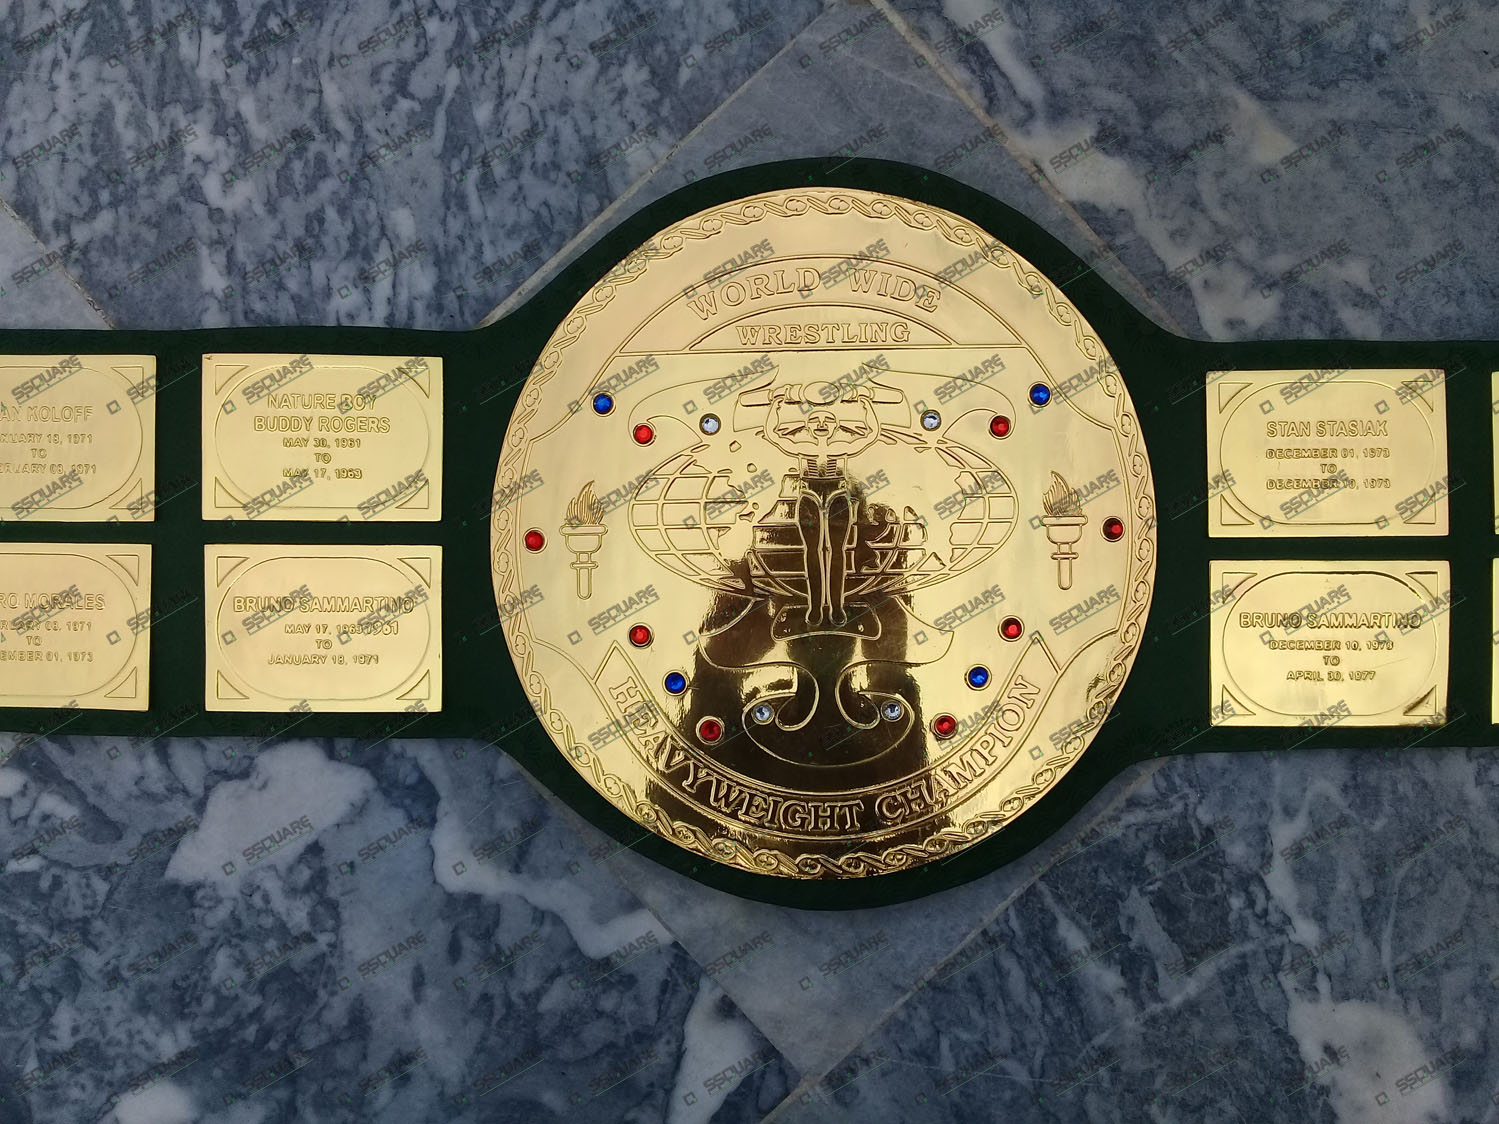 Hulk Hogan WWF Big Green Championship Belt